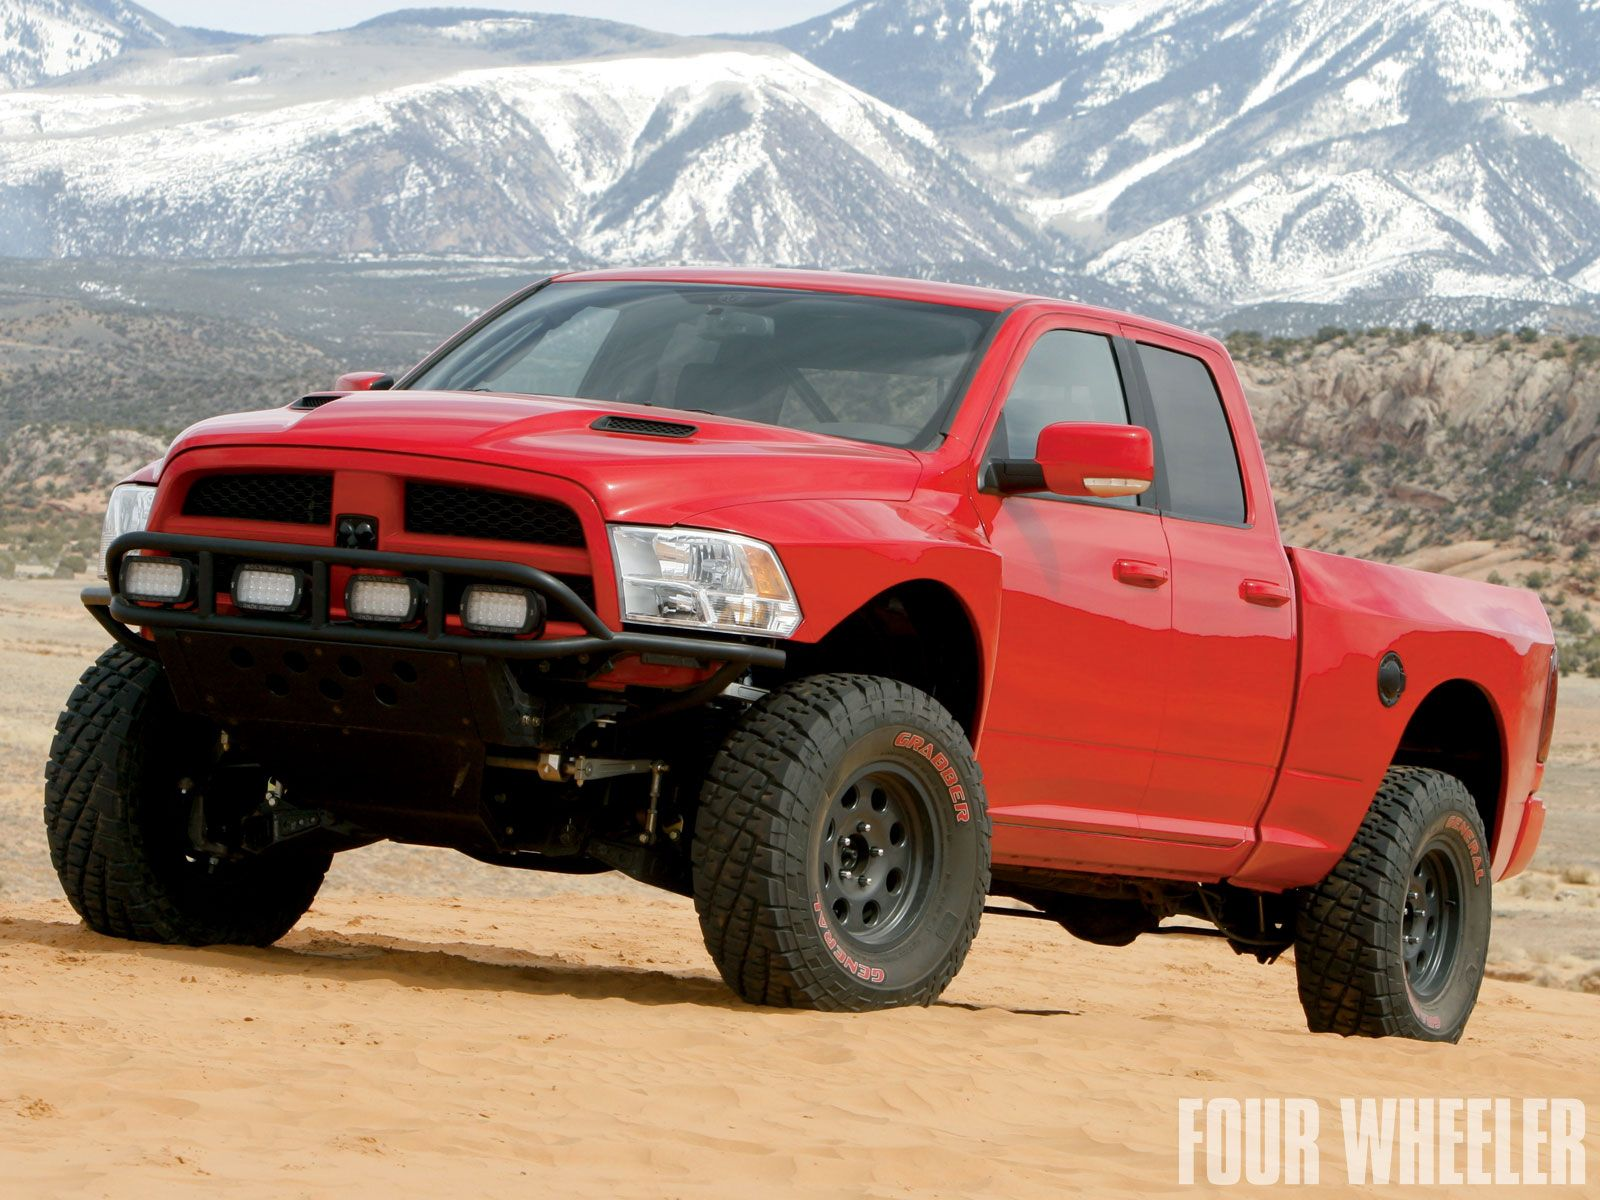 Ram Ram Runner Ram S Aftermarket Based Answer To Ford S Raptor It Has Beat The Raptor In Some Off Road Contests But Is Not Ram Runner Mopar Lowered Trucks